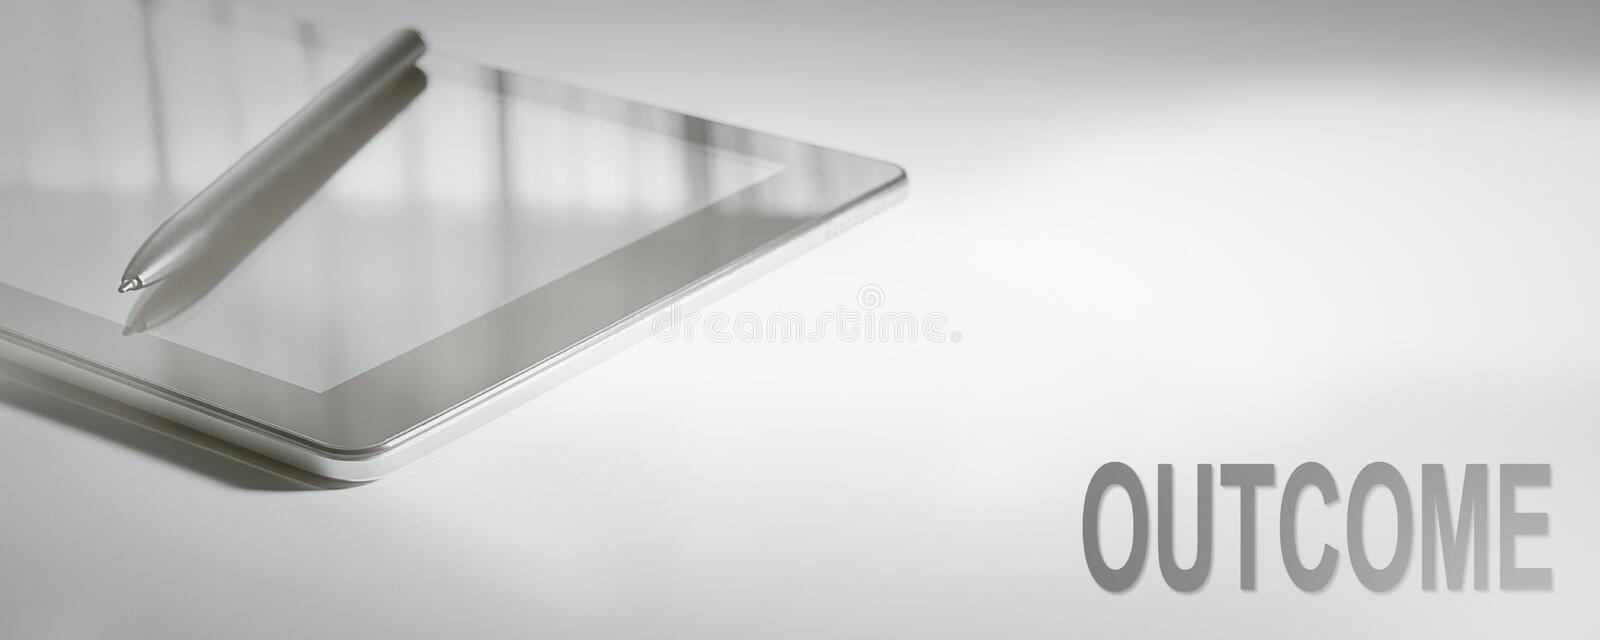 OUTCOME Business Concept Digital Technology. stock photo